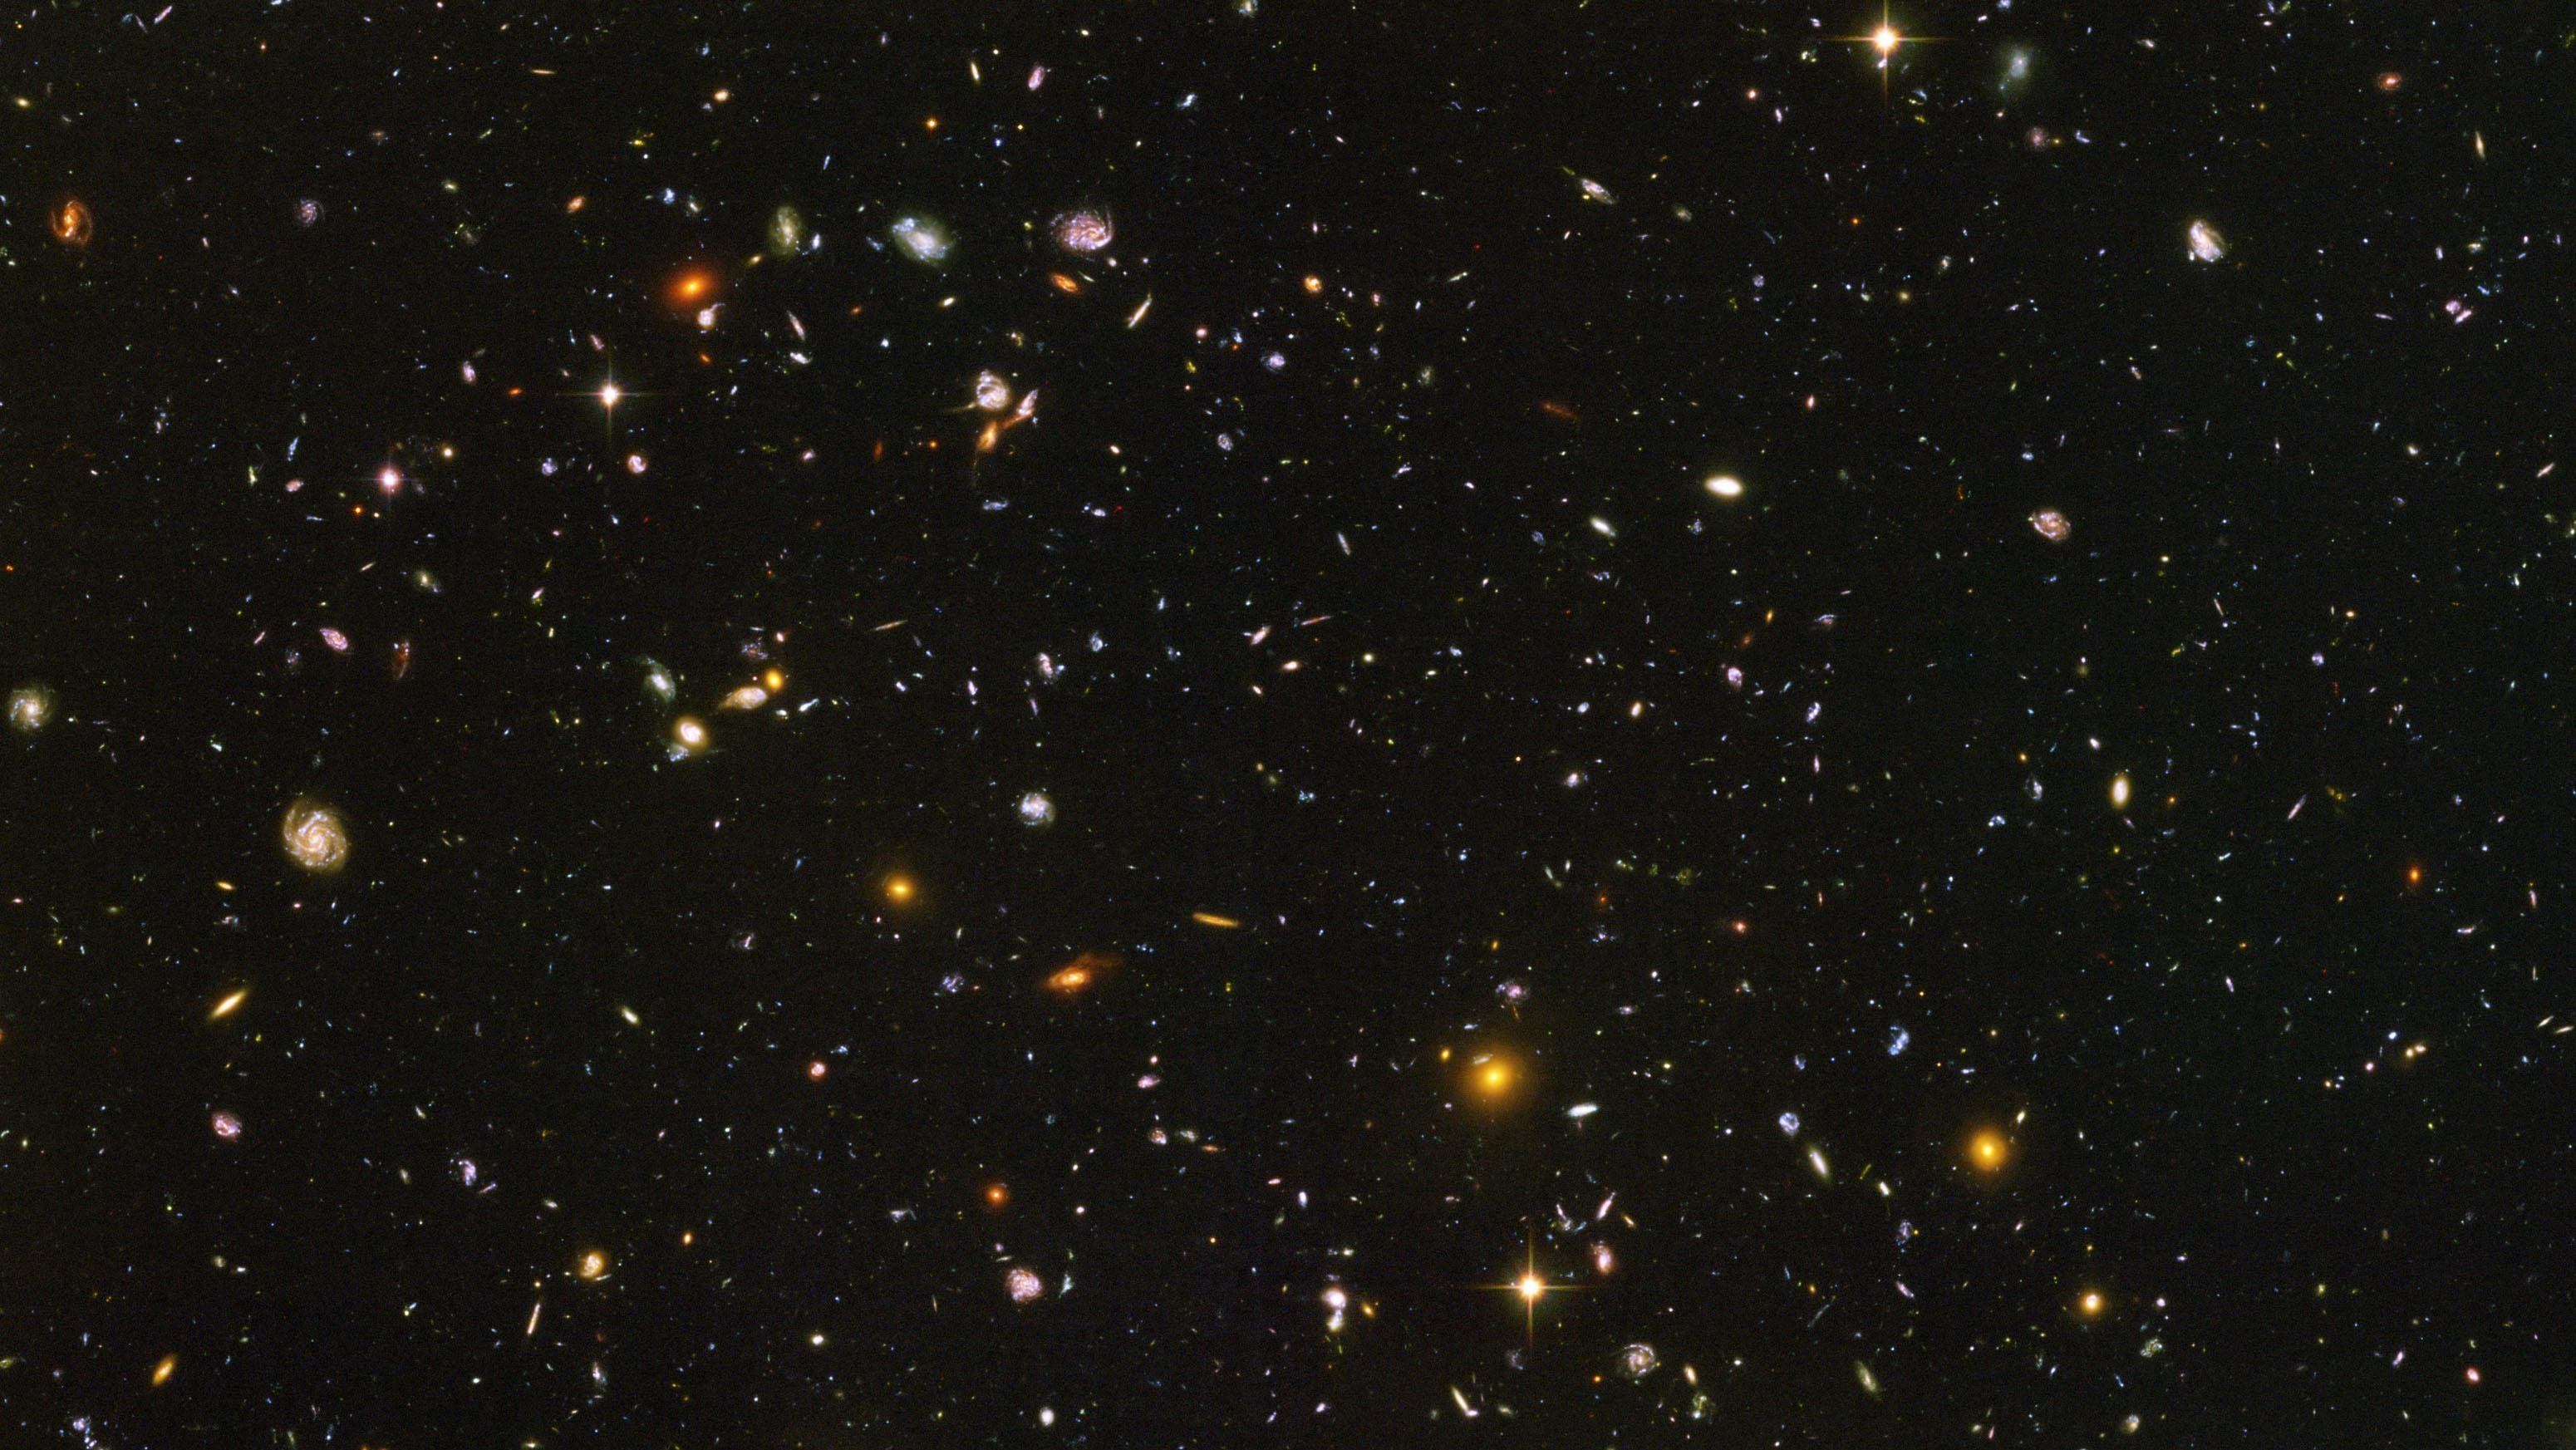 I prefer starry backgrounds. I've had the hubble deepfield as my background  for years. …